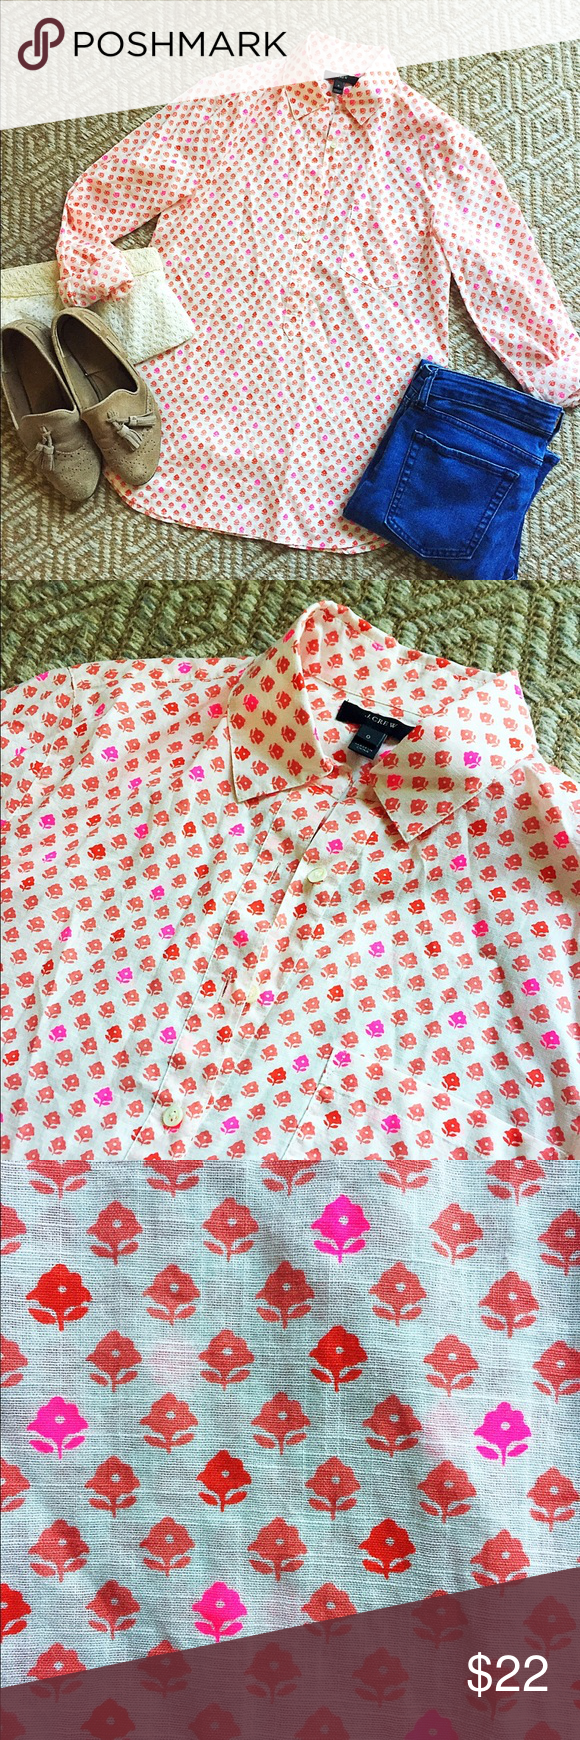 J. Crew Printed Blouse Fun collared top with cute multi-colored Floral pattern. Featuring 3/4 open neckline & pocket detailing. J. Crew Tops Blouses